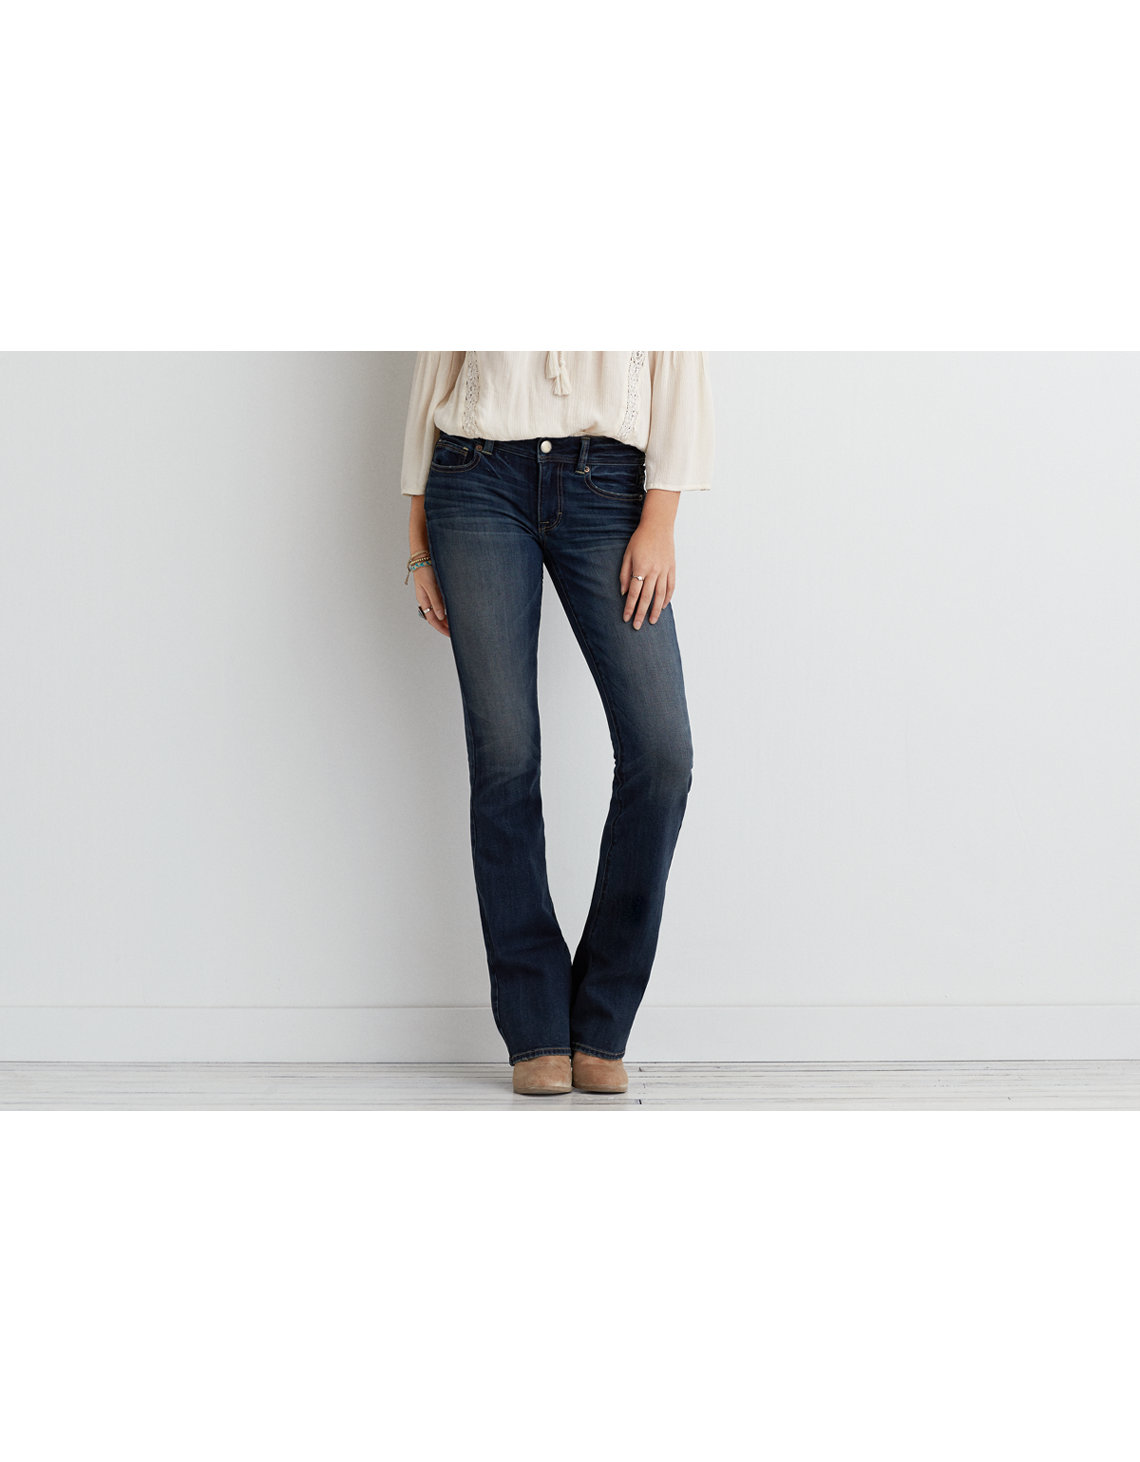 Womens Stretch Denim Jeans | American Eagle Outfitters